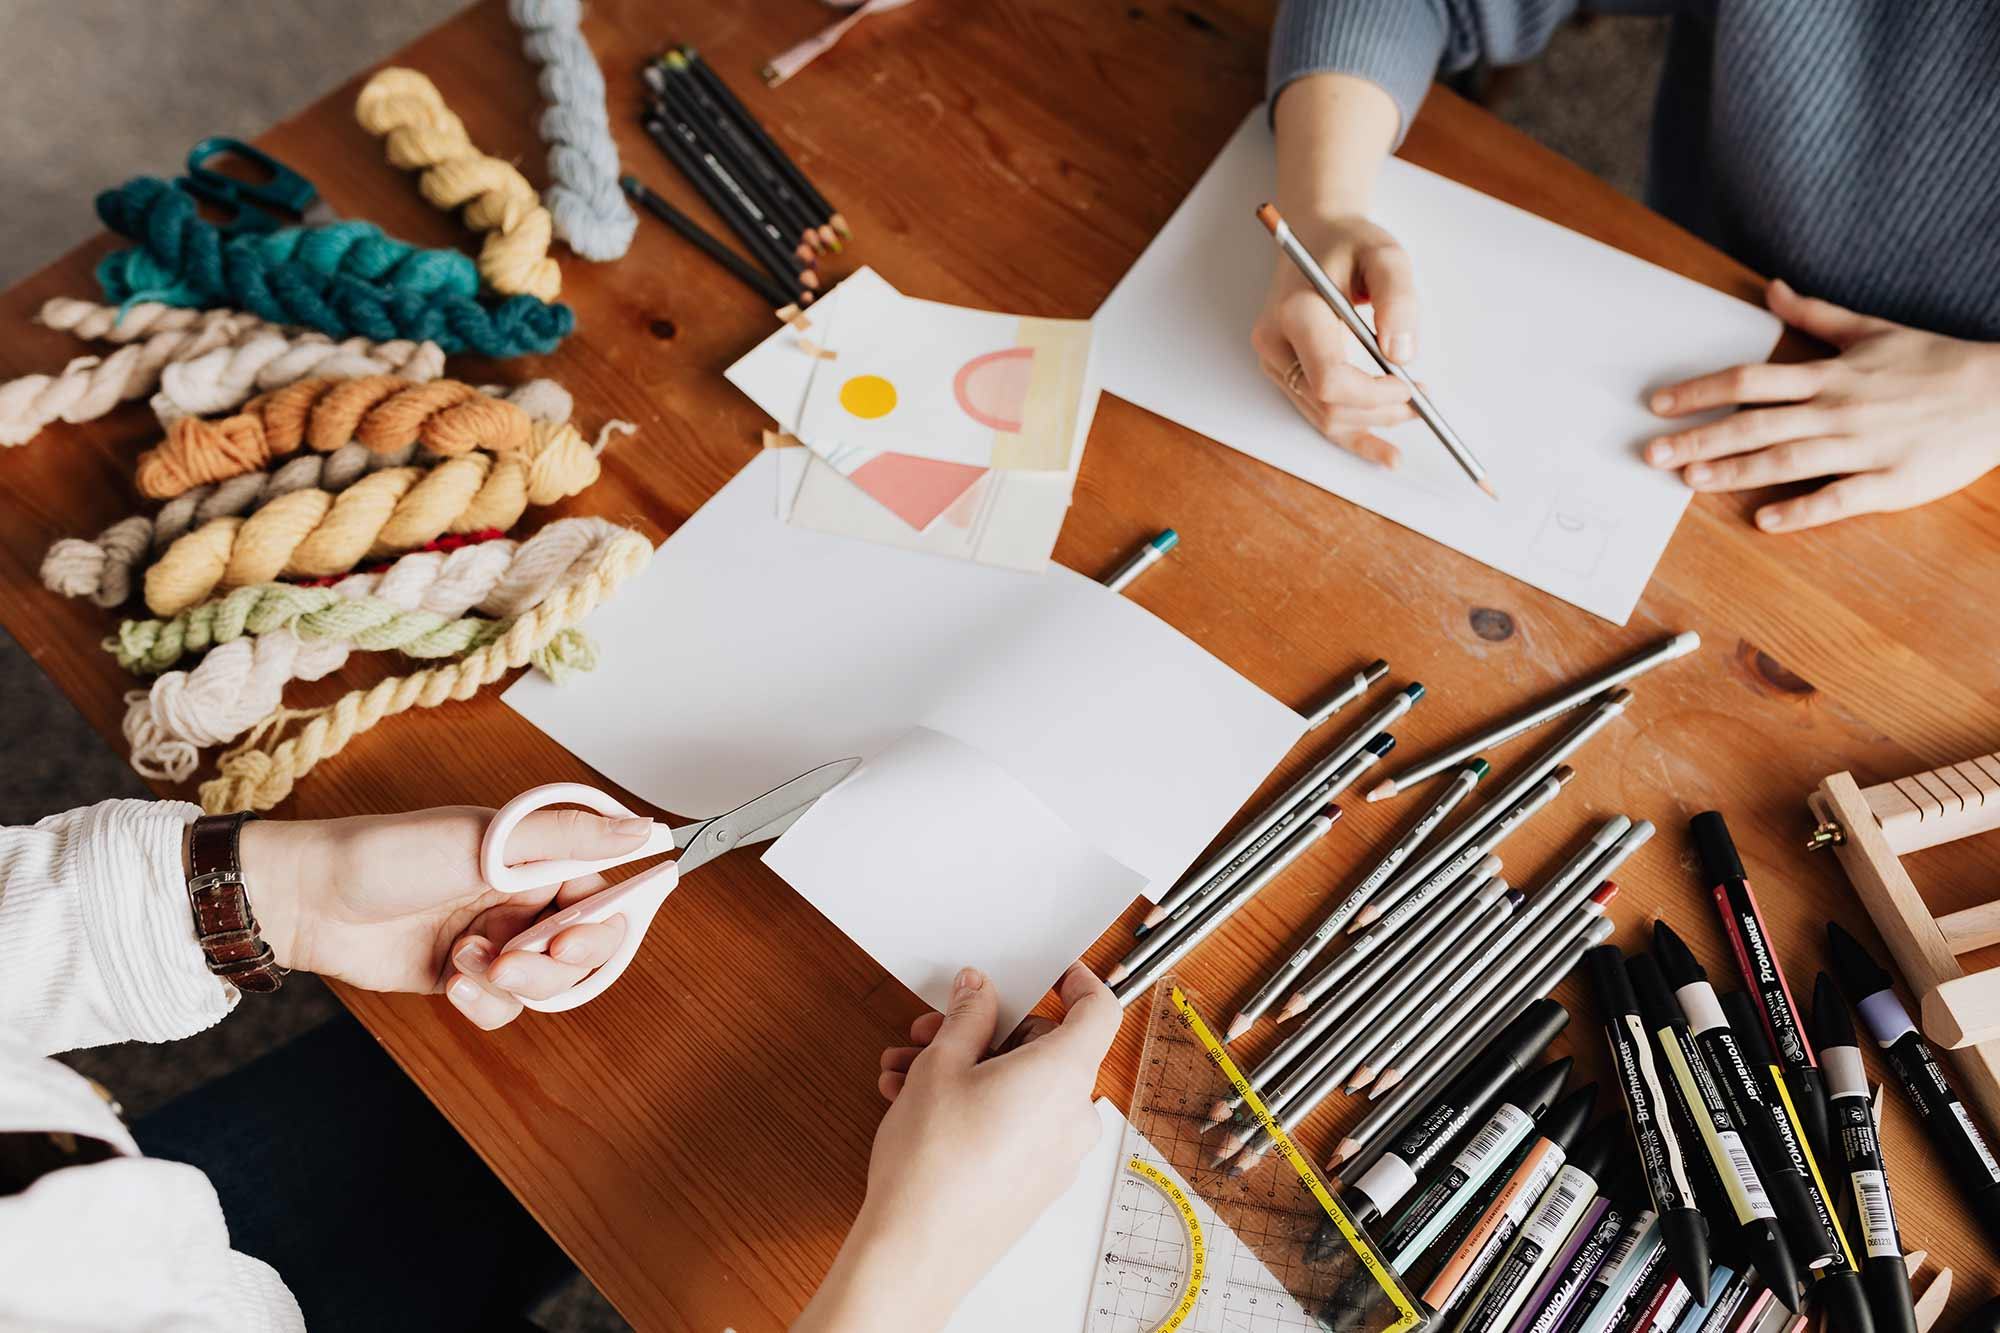 People doing arts and crafts on a table